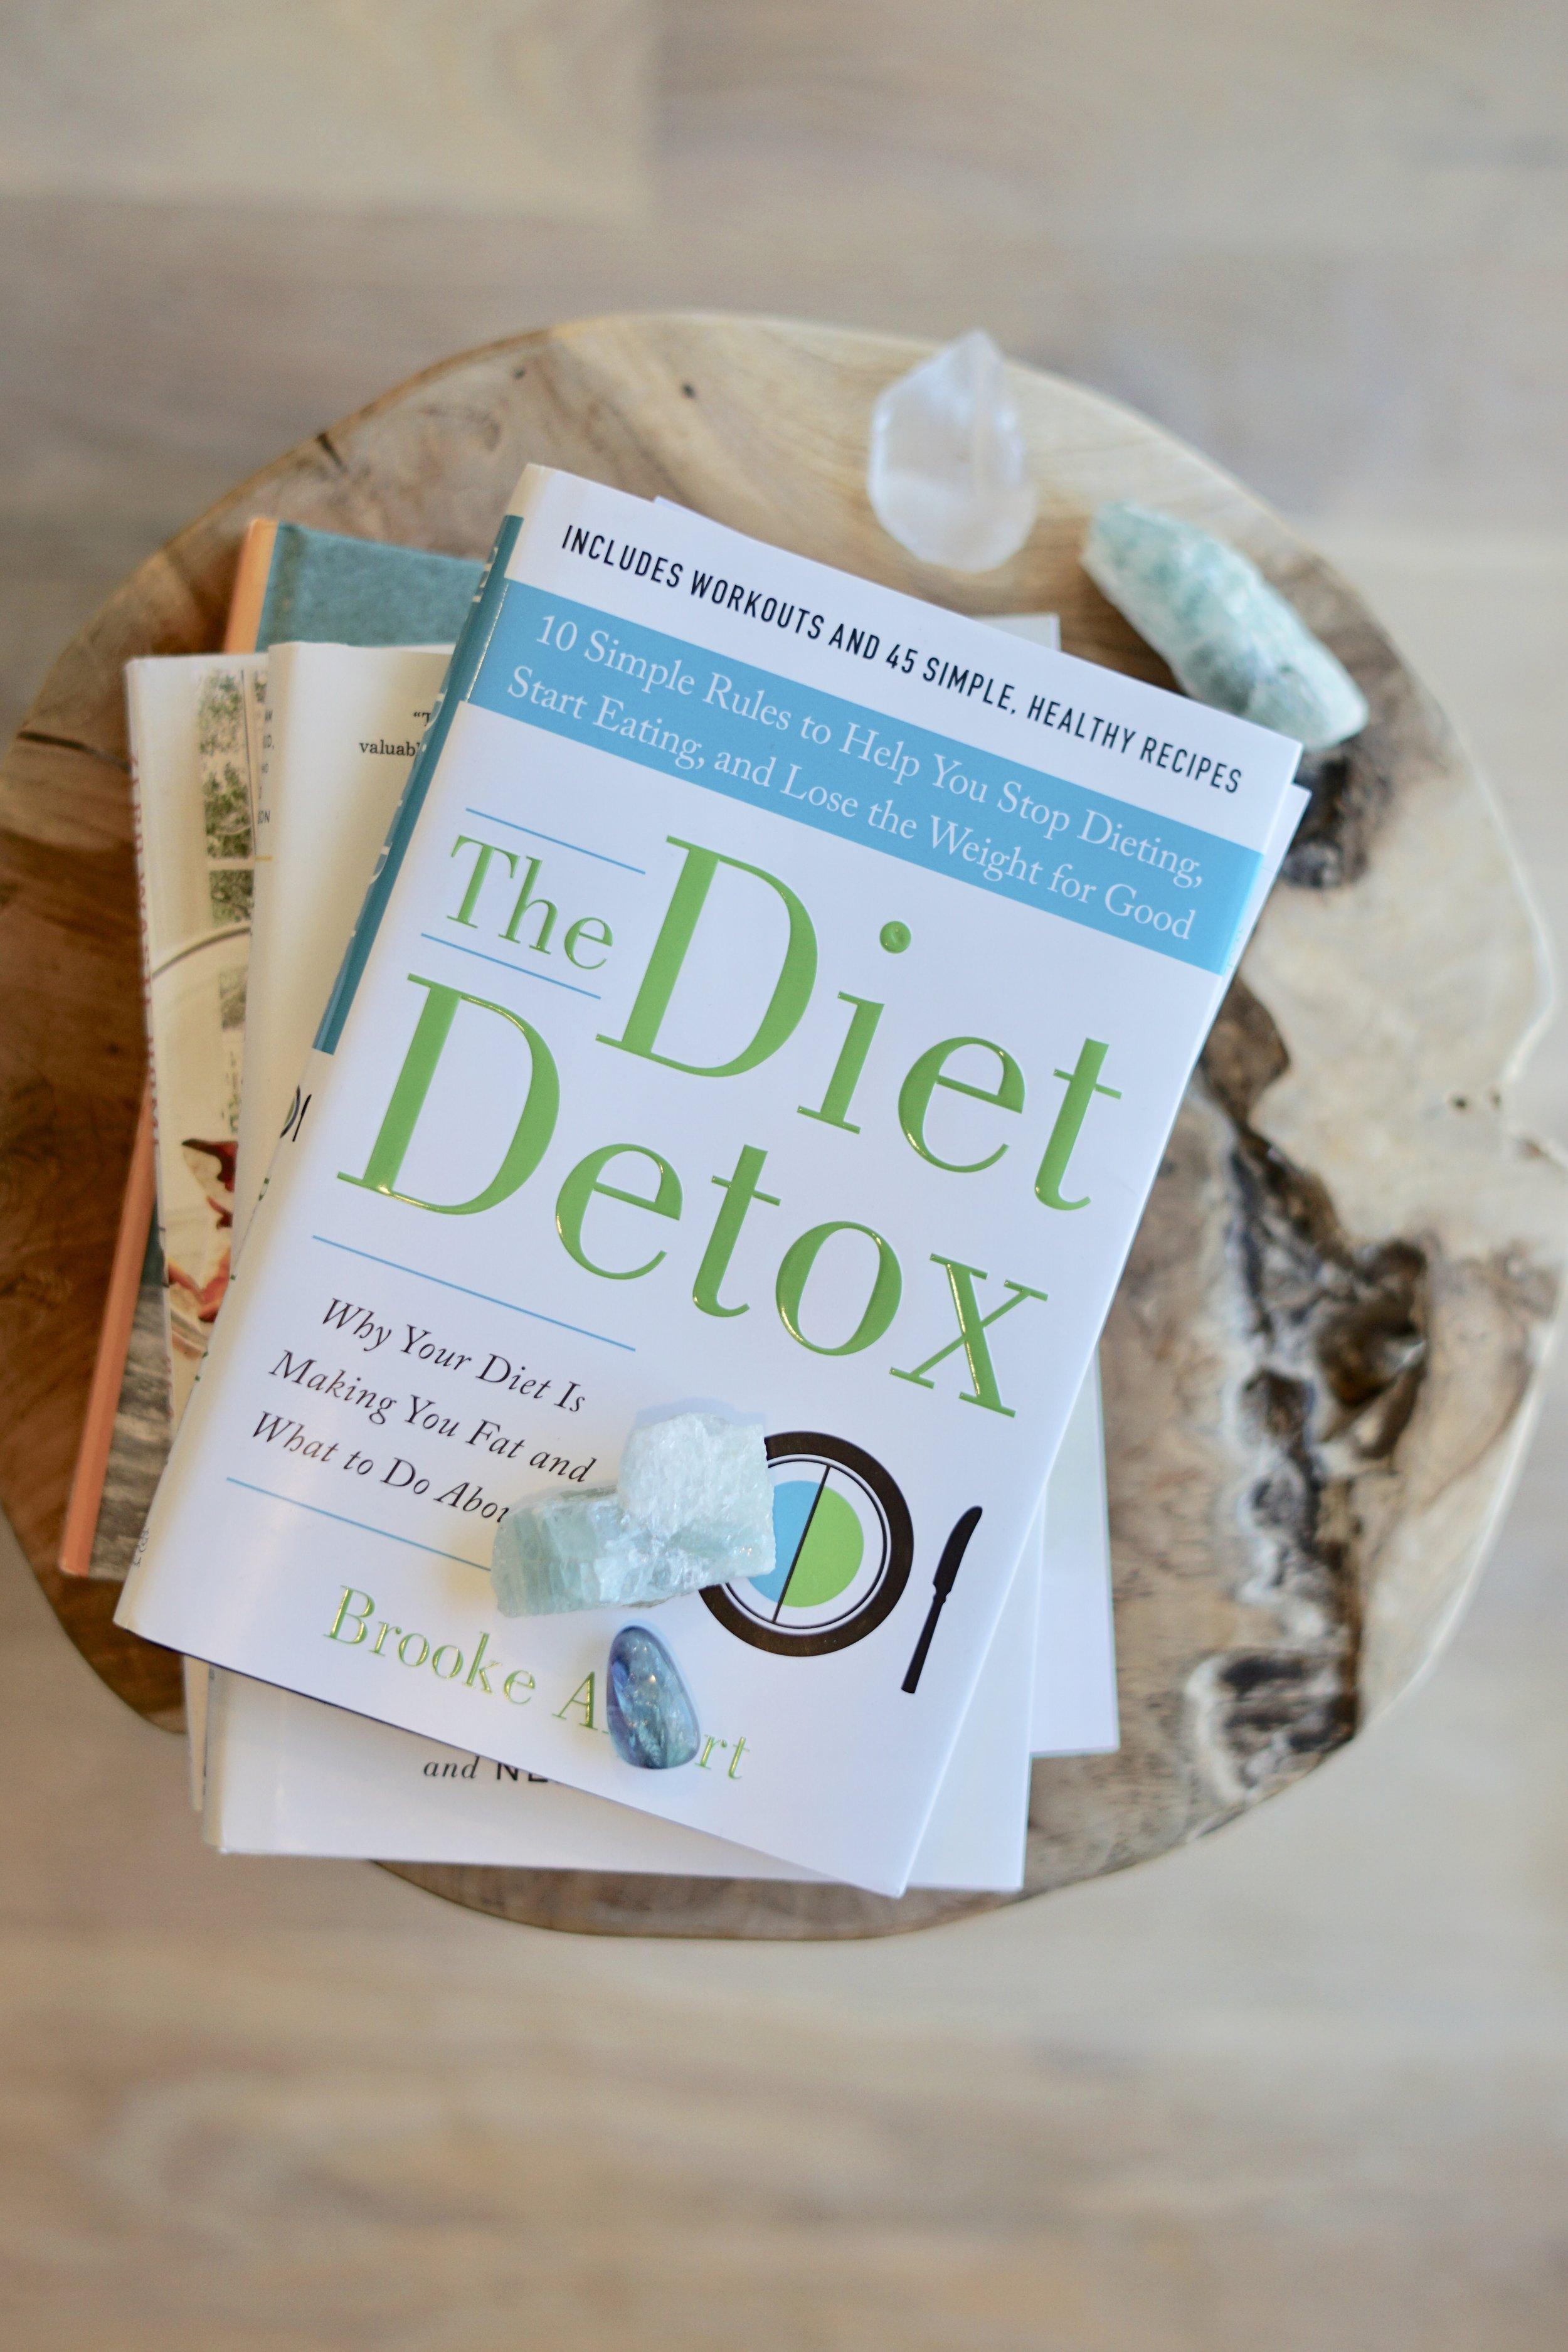 Detox: Diet or something more? - This word that gets us to cringe, be hesitant or eager. Which do you feel when someone mentions a detox to you?